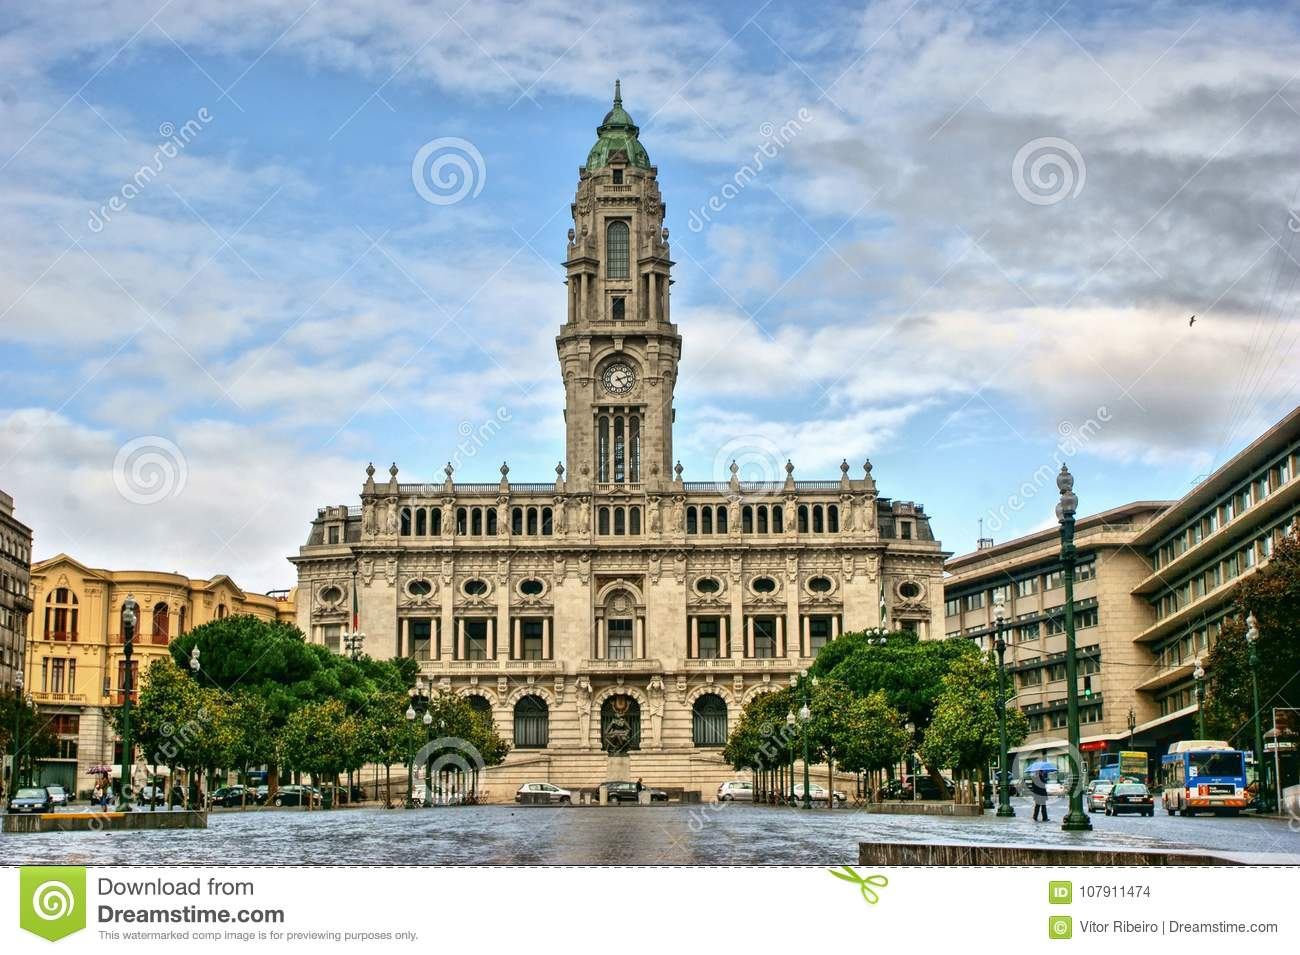 City Hall of Oporto